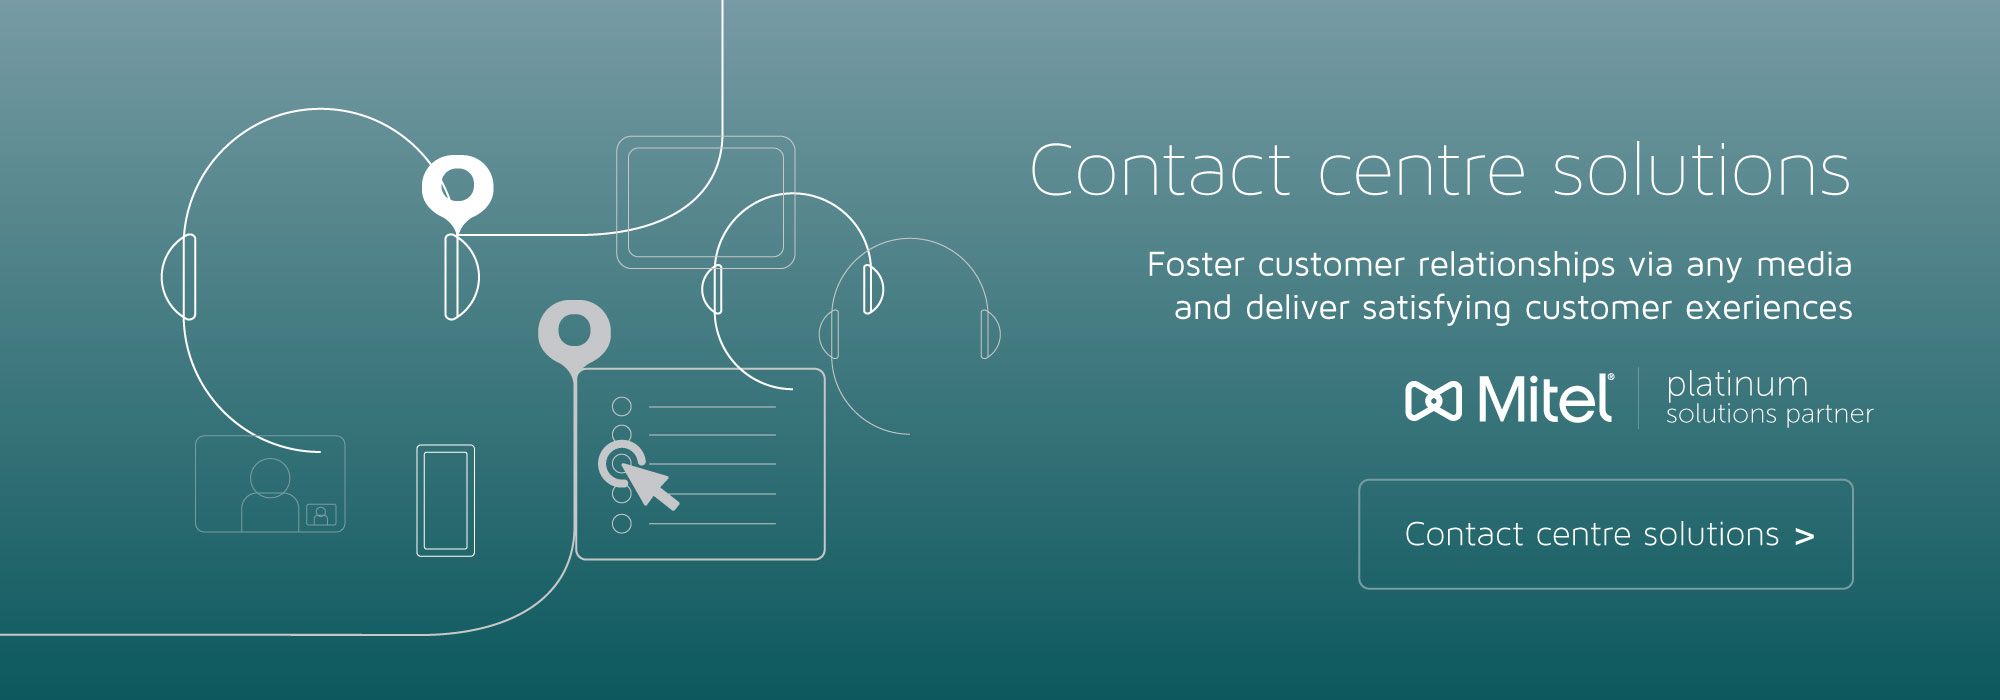 Mitel Platinum Partner Contact Centre